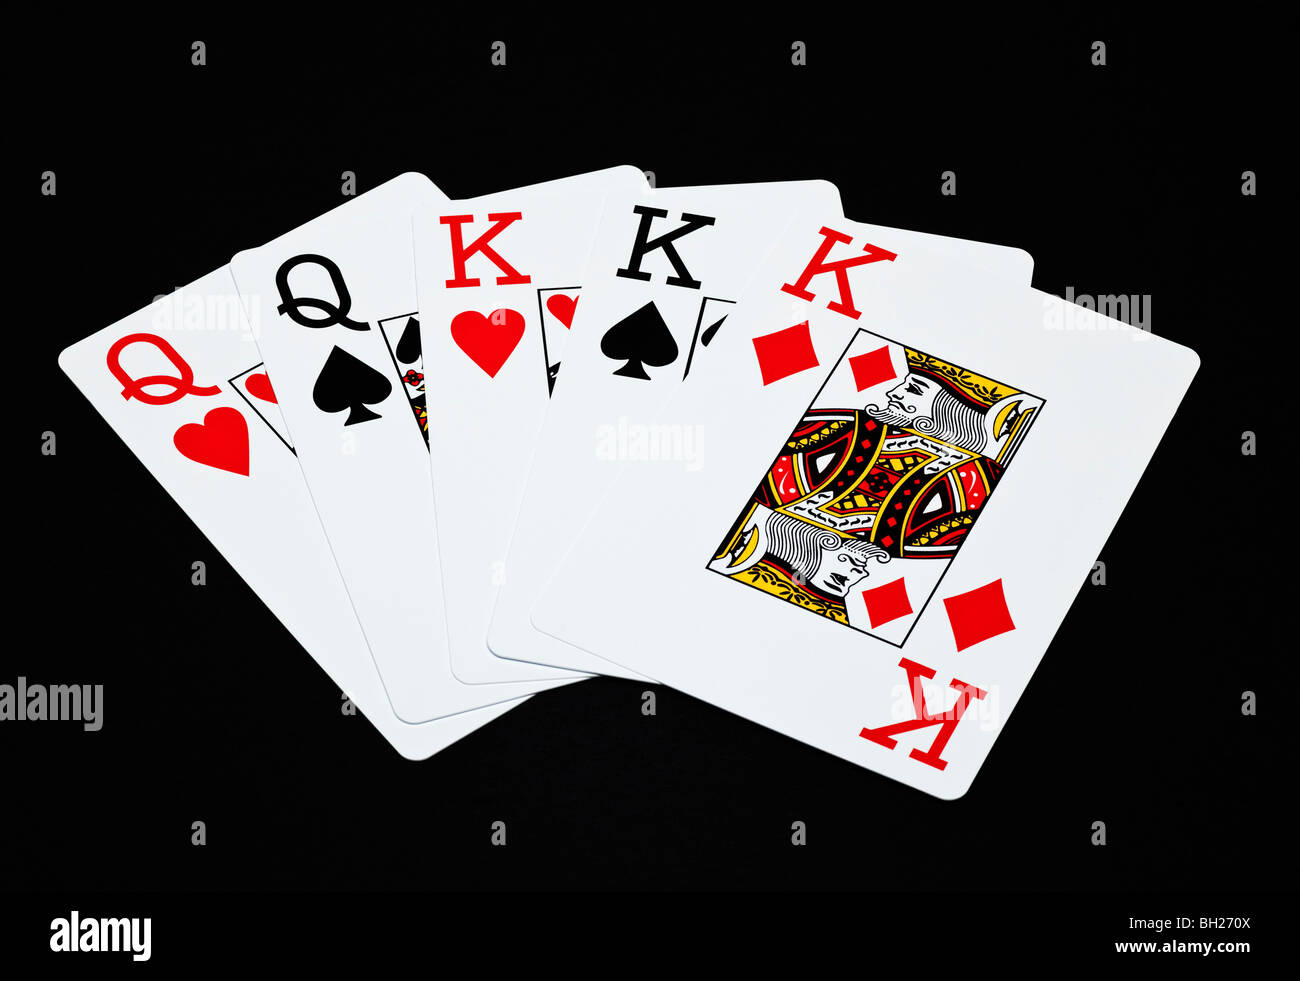 Playing cards showing a Full House poker hand - Stock Image